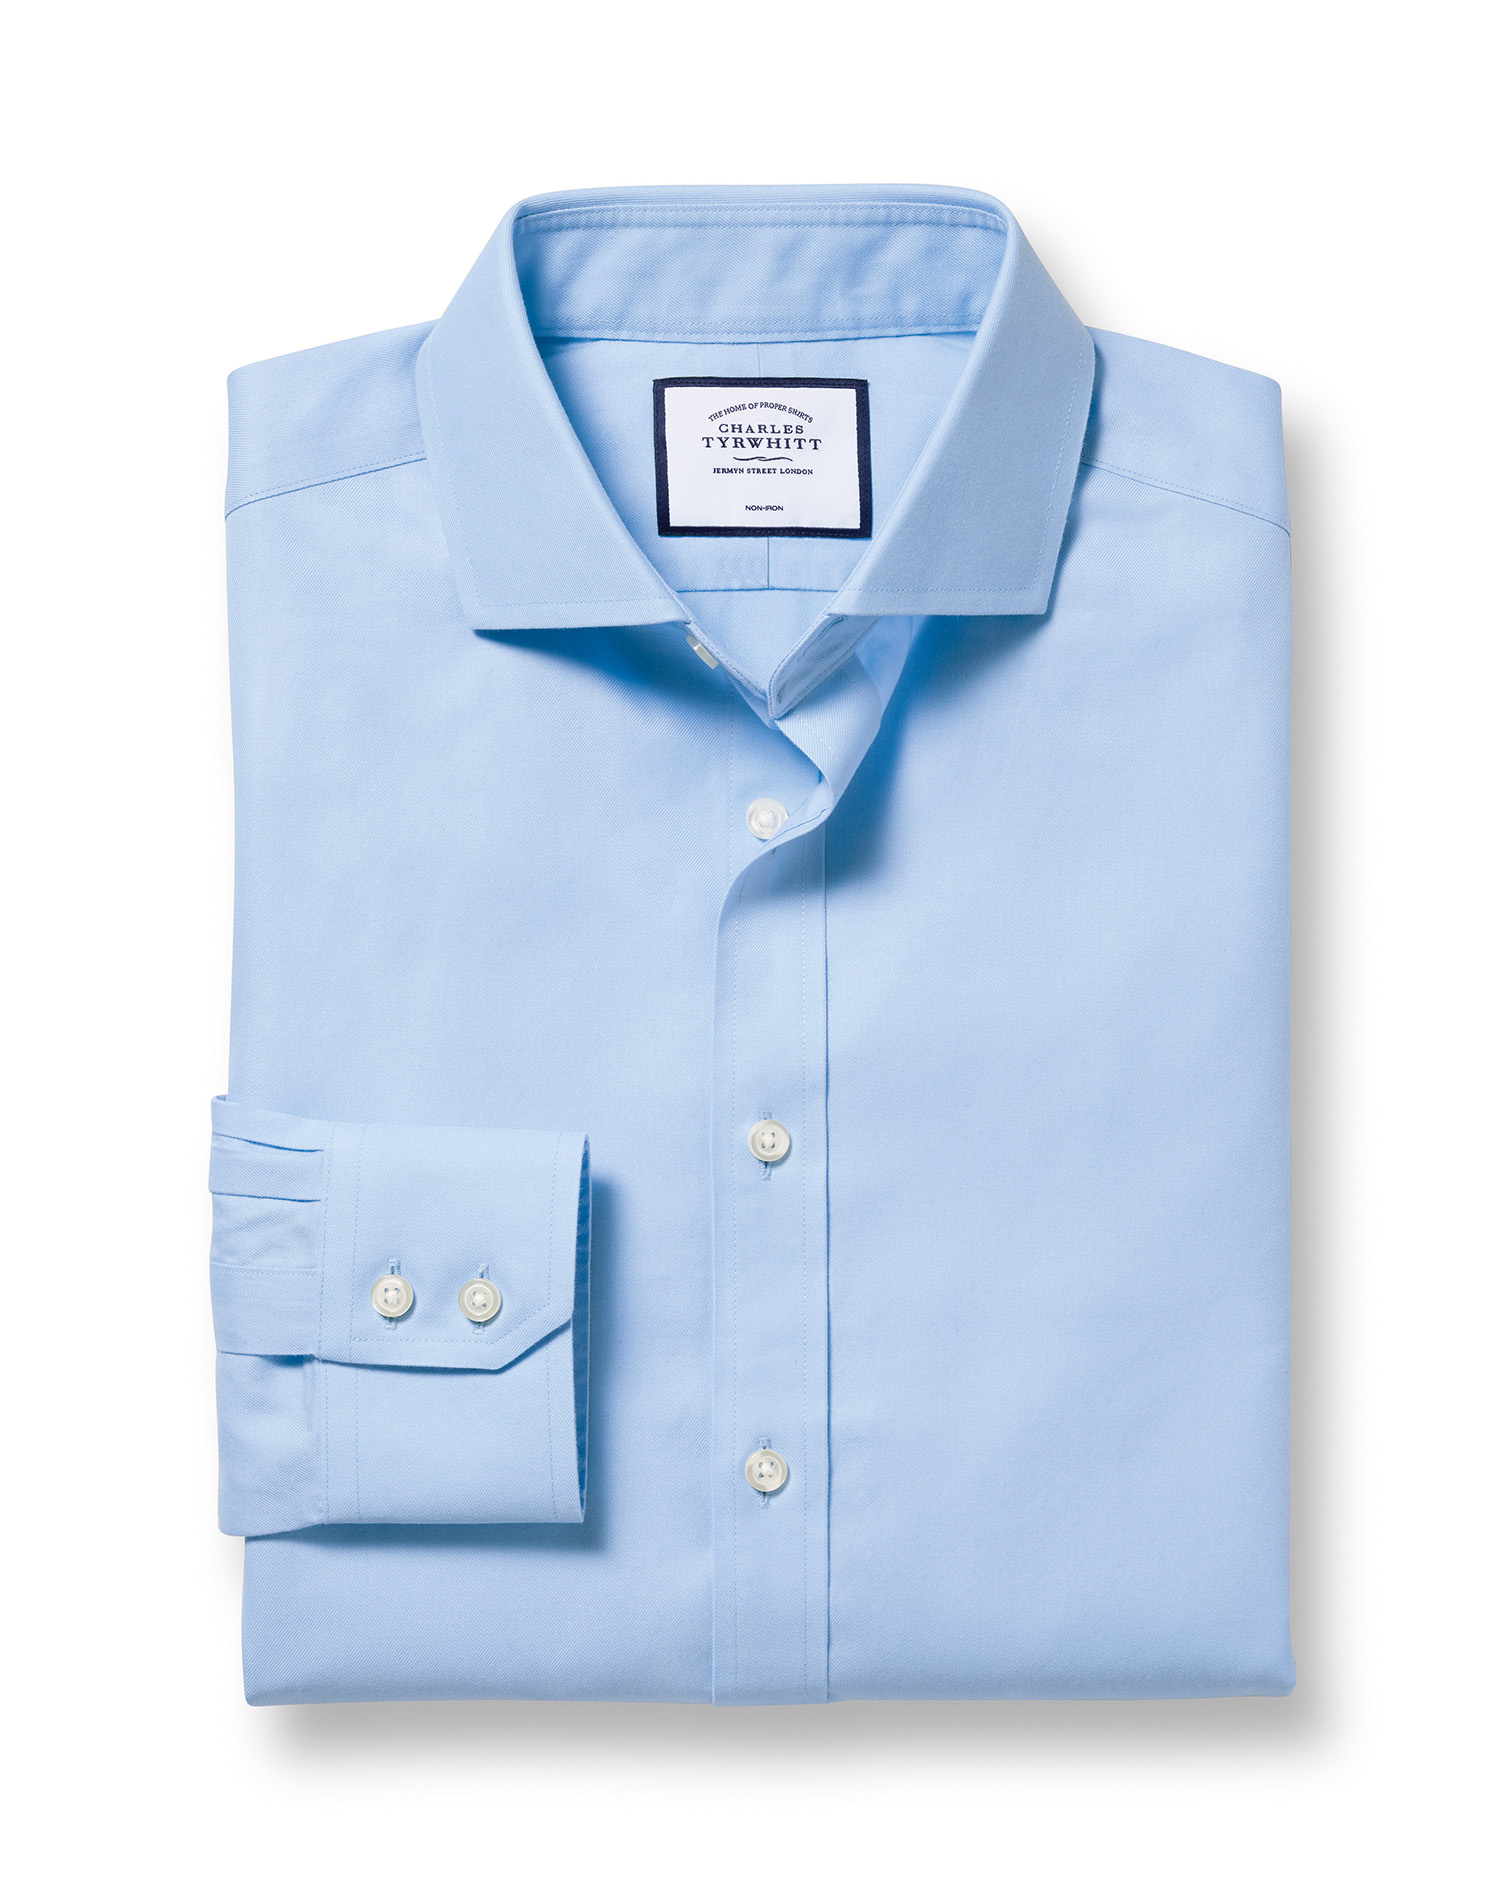 Slim Fit Cutaway Non-Iron Twill Sky Blue Cotton Formal Shirt Single Cuff Size 17/34 by Charles Tyrwh